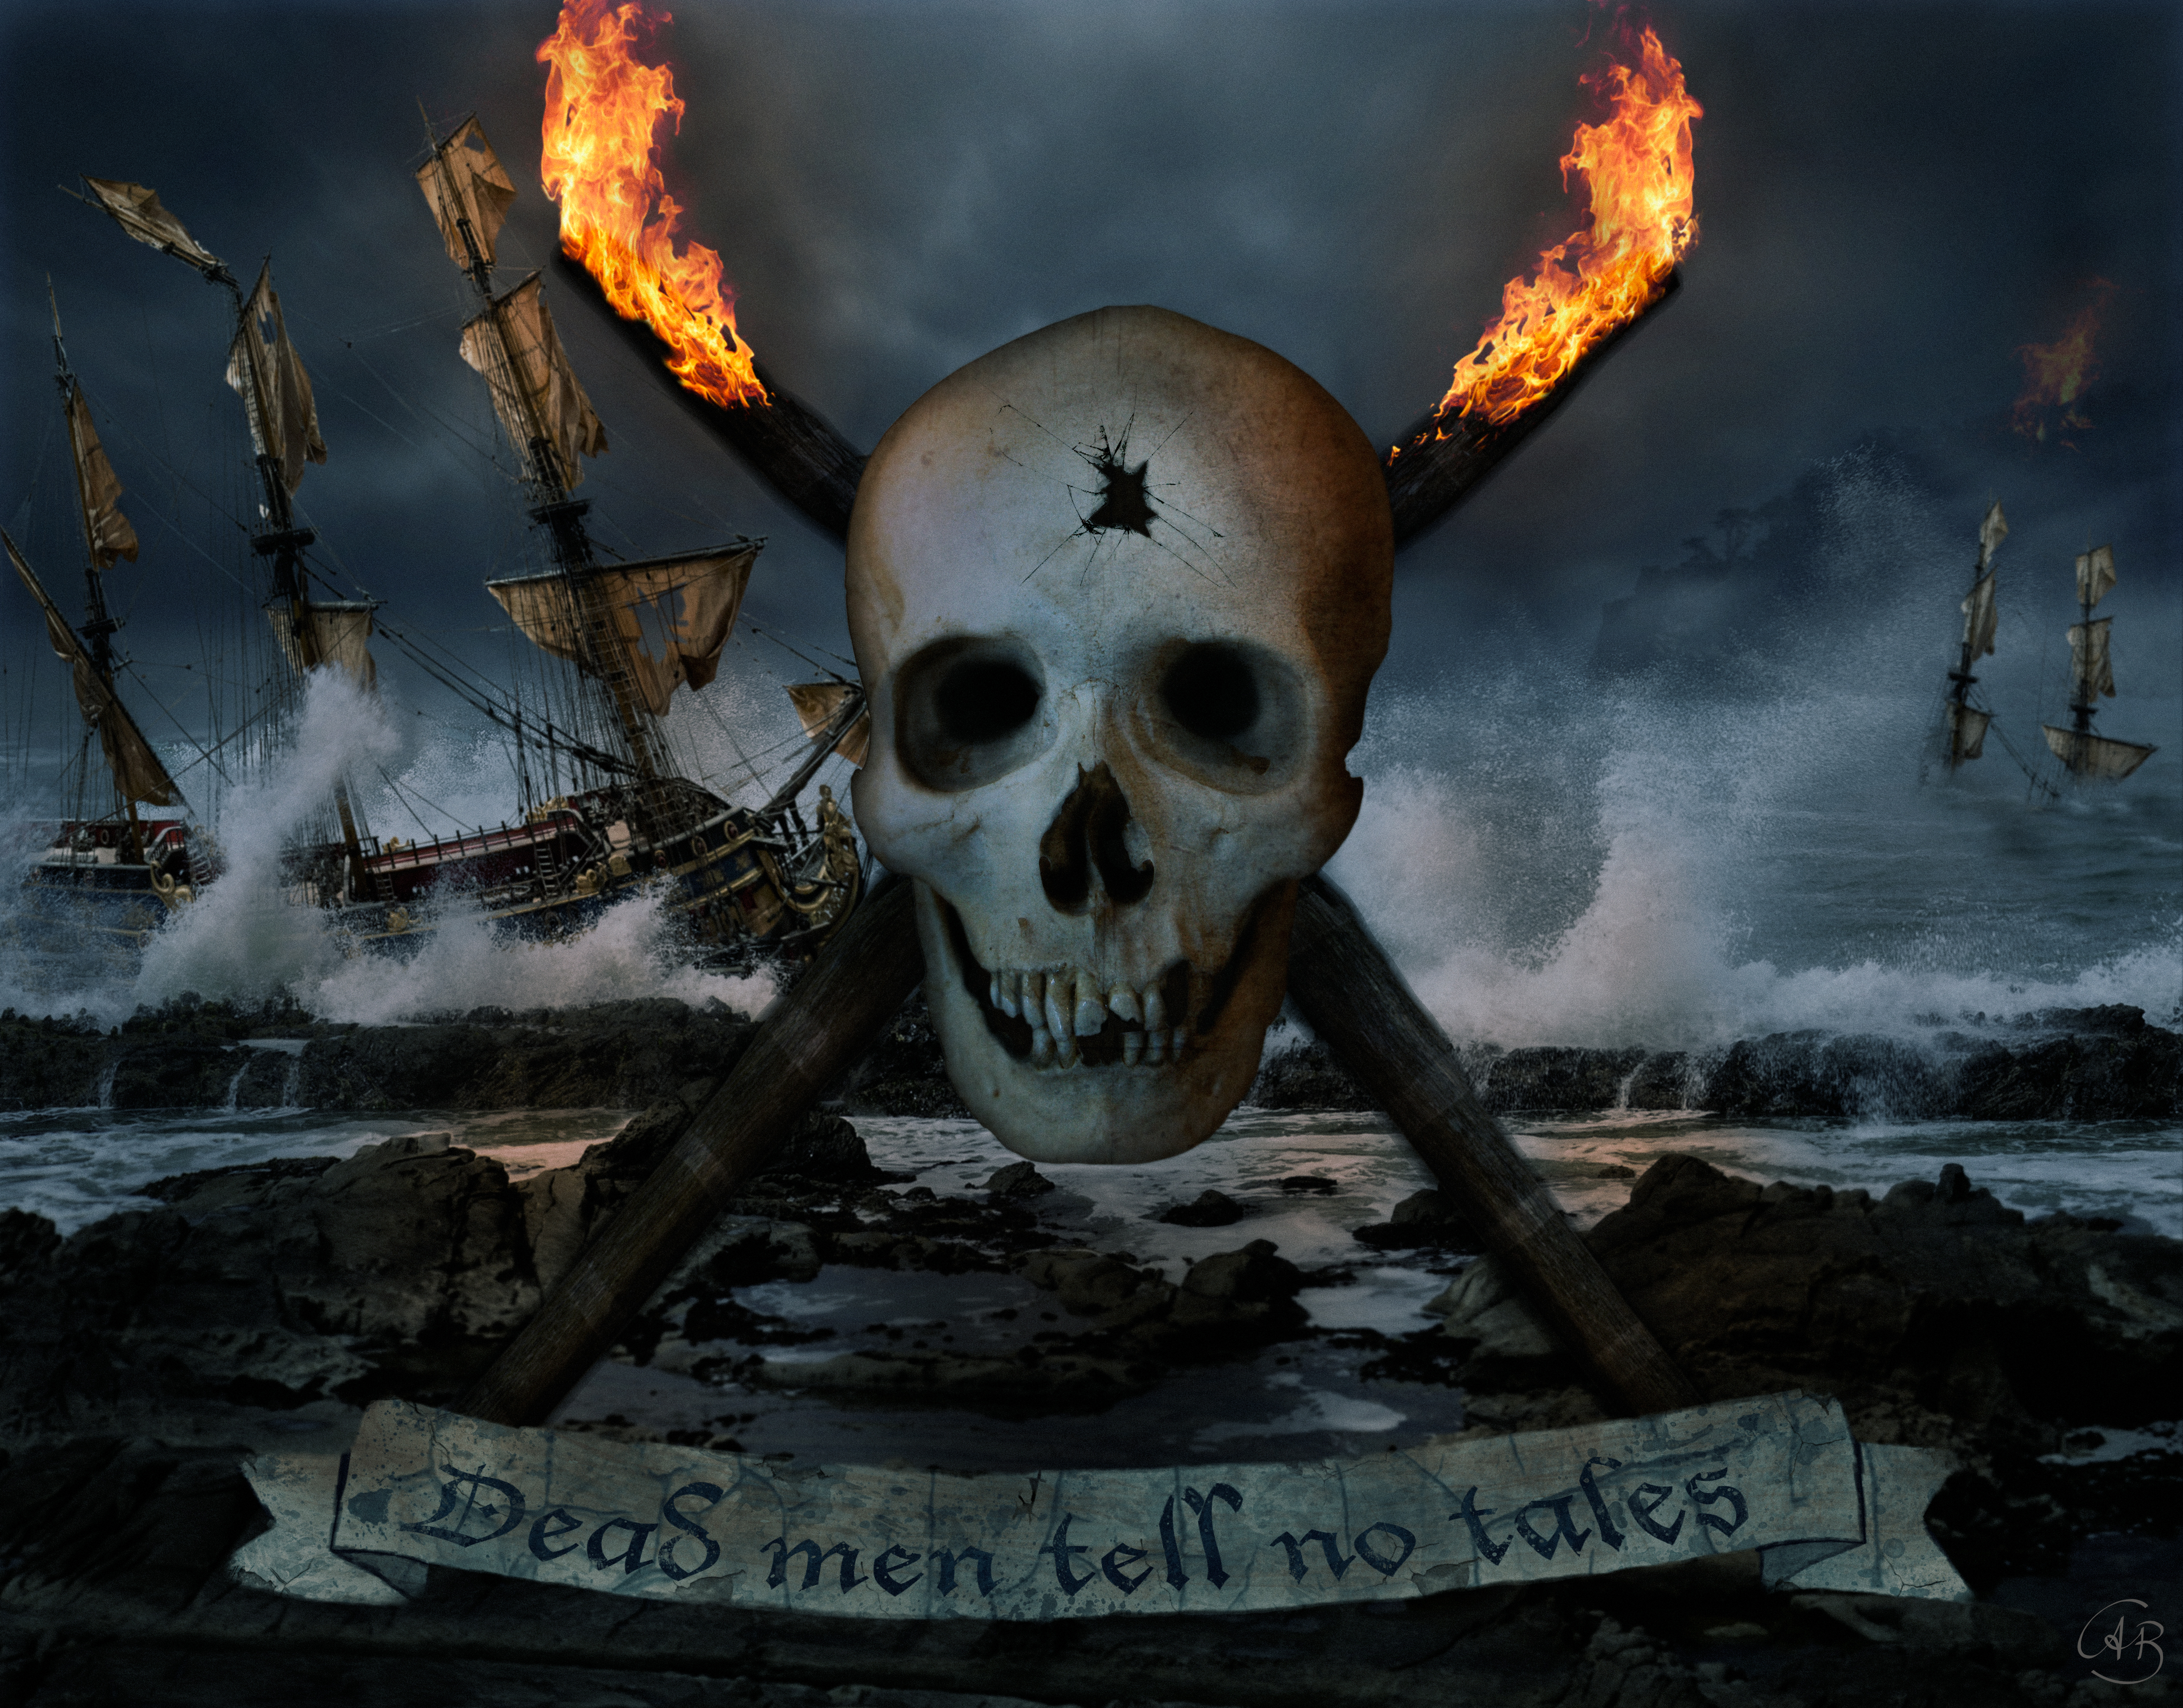 Dead Men tell no tales by Alobyss